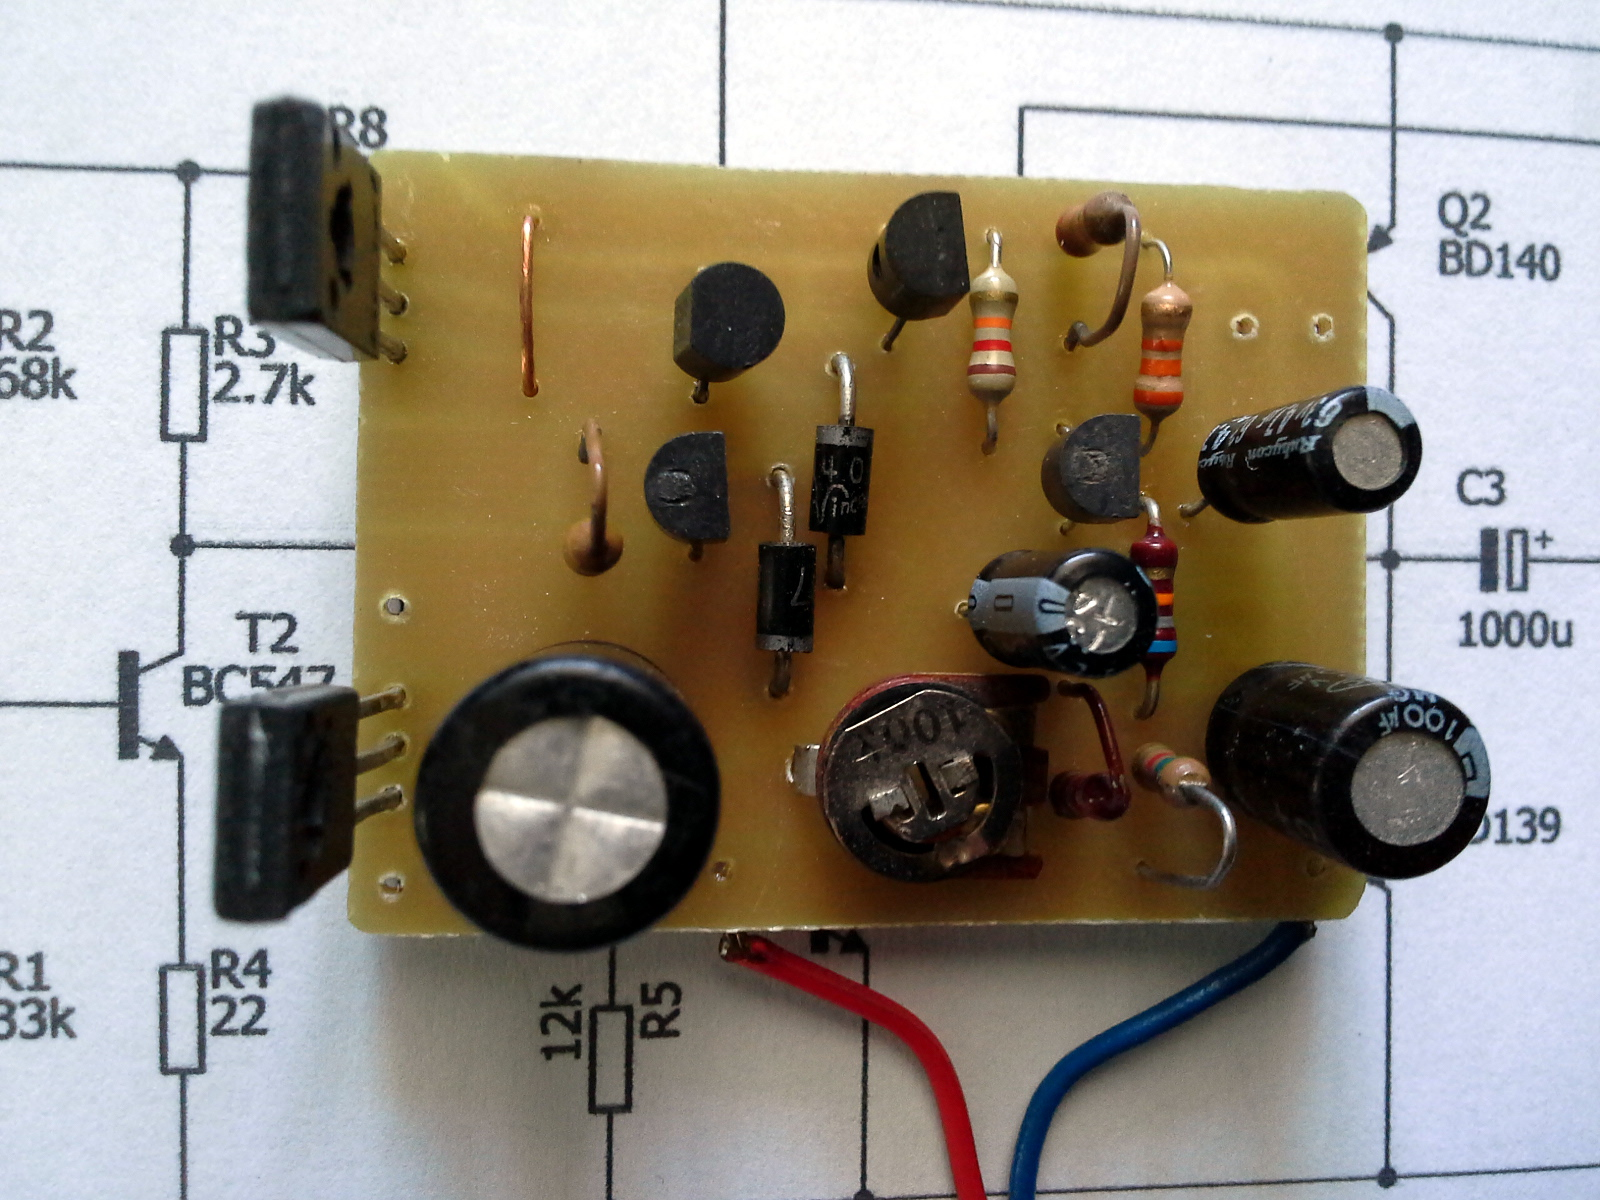 29 45mhz Receiver Project in addition 1 kw 2m ldmos  lifier further Cigar Box Guitar   With Lm386 Power   2 Transistor Mpf102 Jfet Pre  Surprisingly Butter furthermore Voltage To Frequency Converter Circuit together with 2 5w Audio  lifier With Transistors. on amp radio schematics